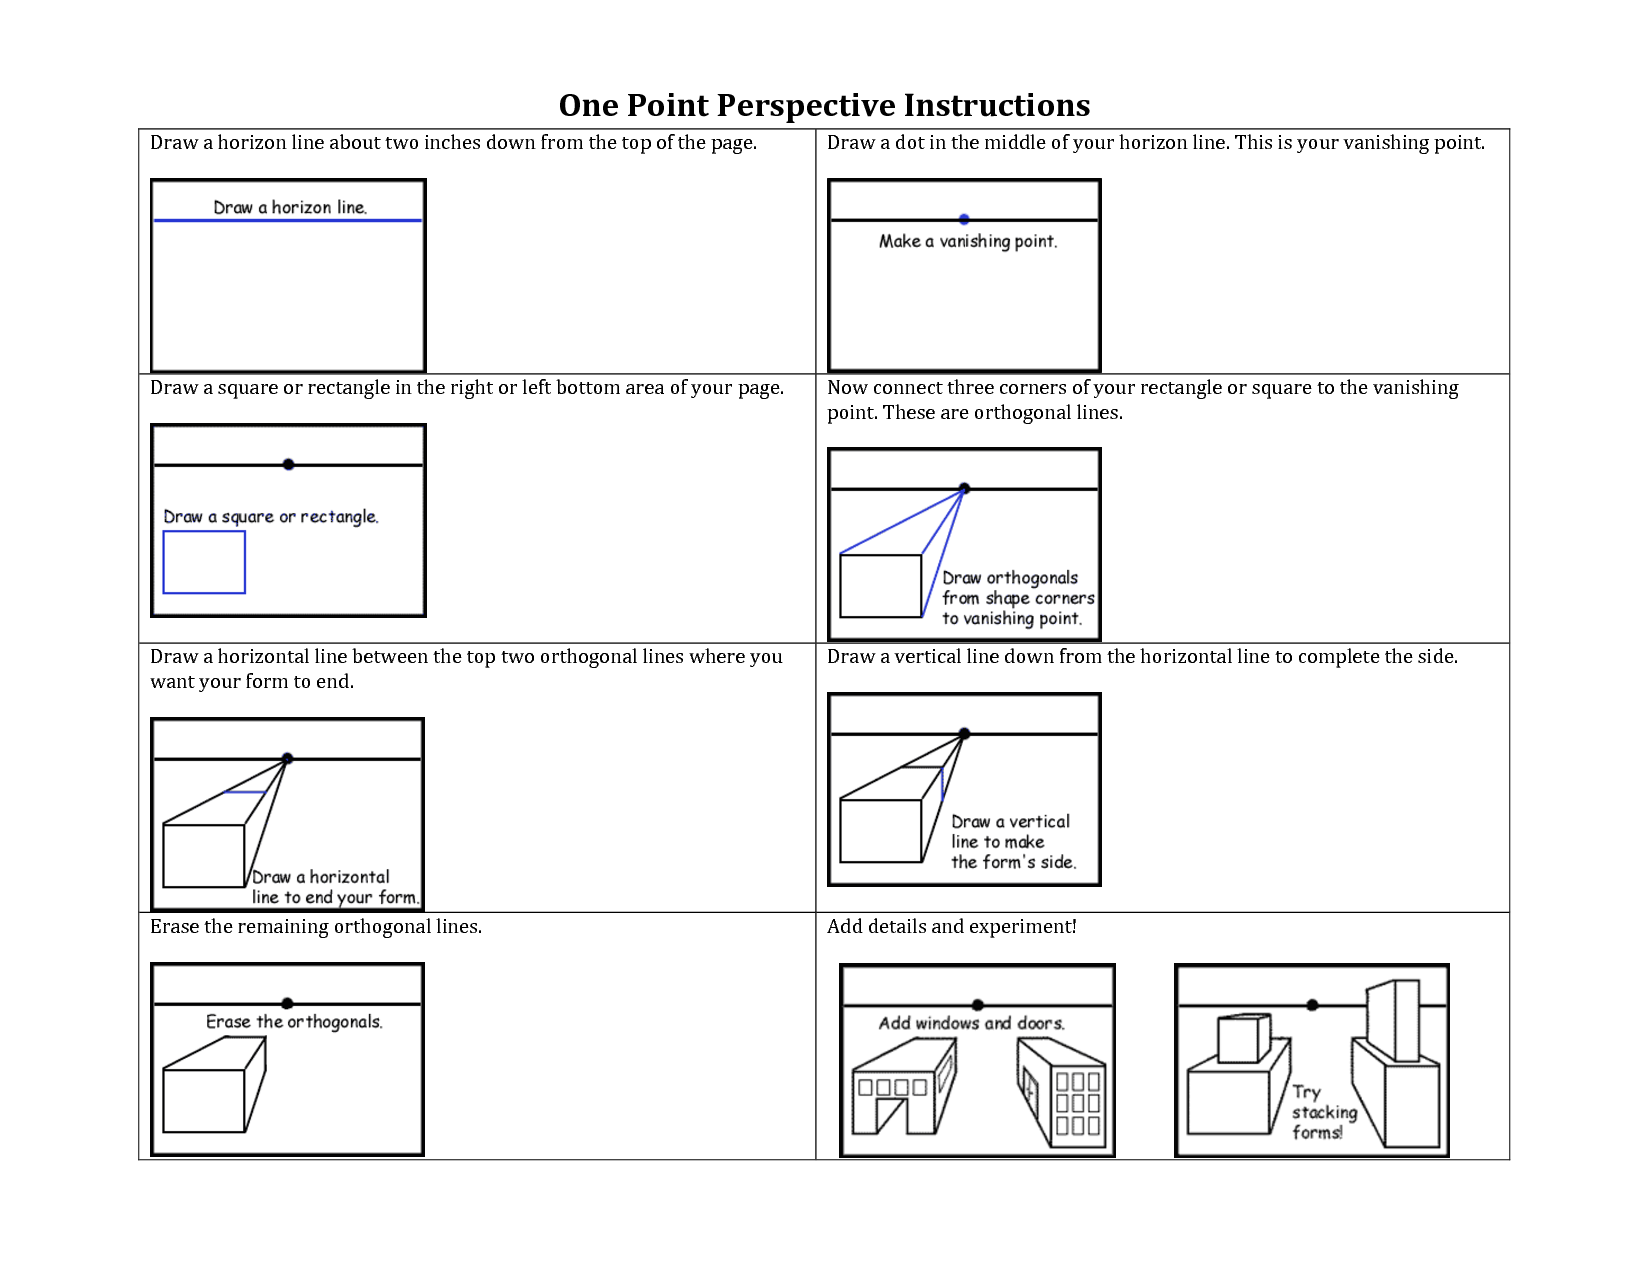 Worksheets One Point Perspective Worksheet one point perspective instructions drawing pinterest onepoint worksheets bing images